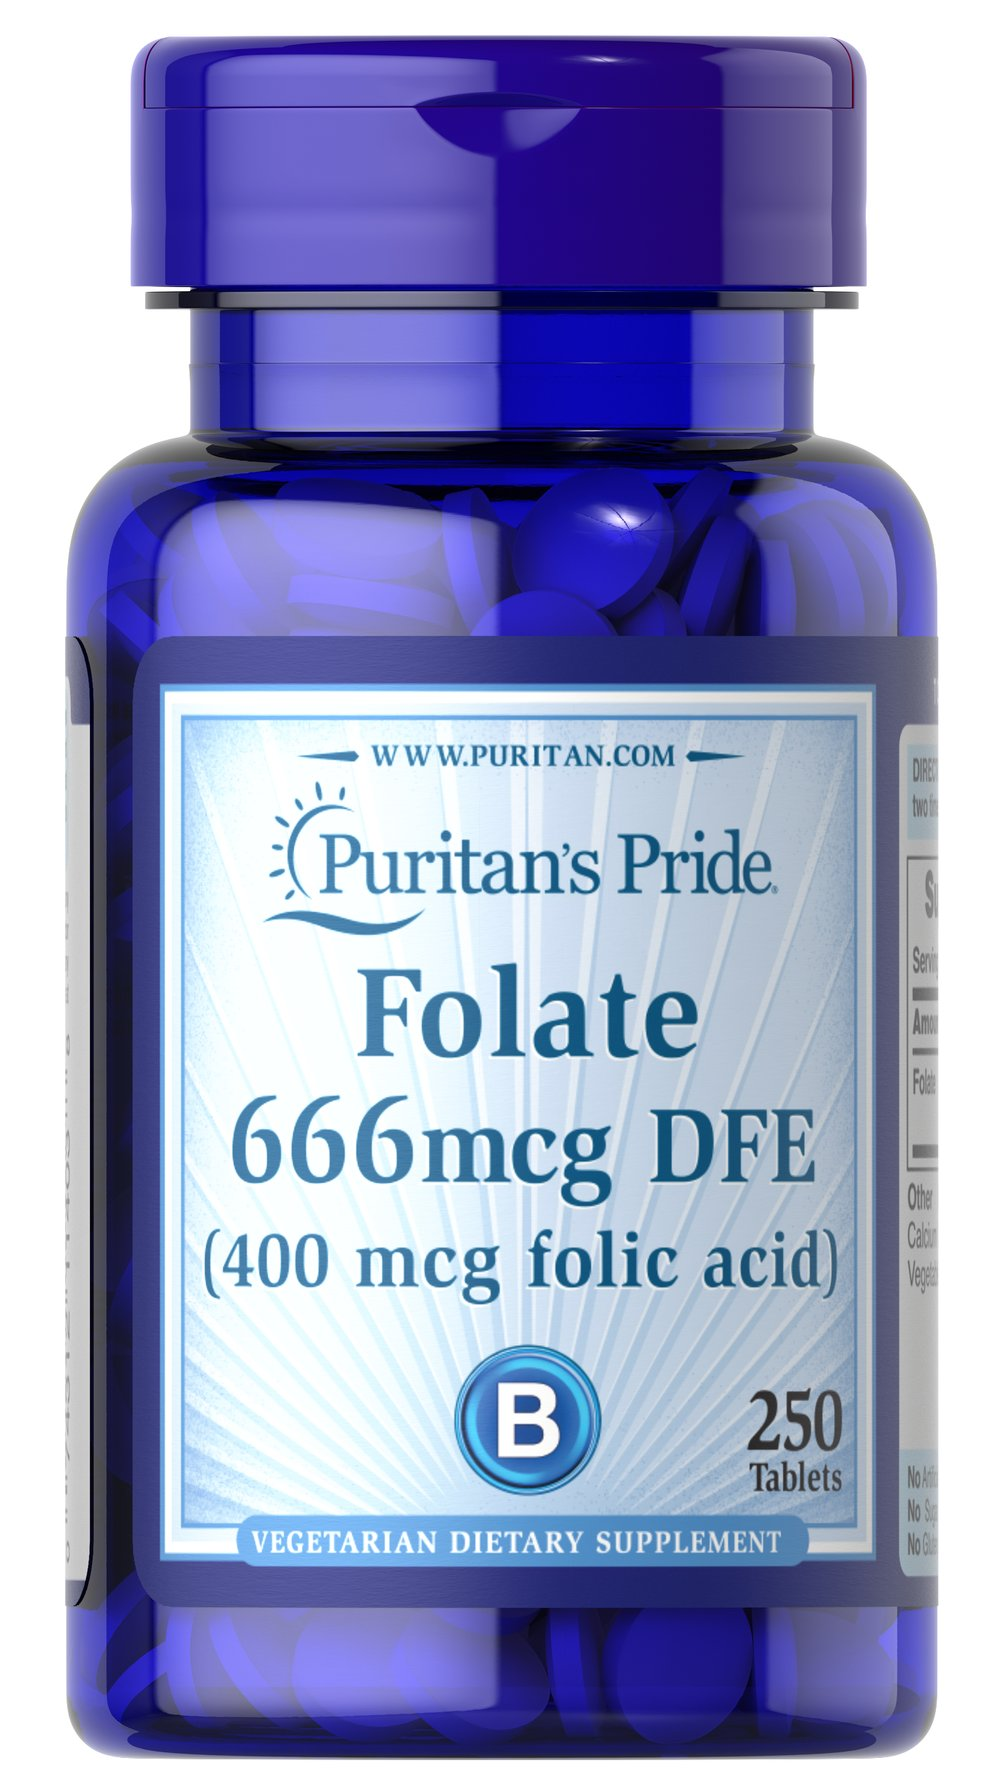 Folic Acid 400 mcg <p>It's well known that Folic Acid is important for pregnant women, but did you also know that this essential B Vitamin also supports cardiovascular health in women and men?** Folic Acid is part of a triad of B Vitamins - along with Vitamins B-6 and B-12 - that helps promote heart health.**</p> 250 Tablets 400 mcg $4.99